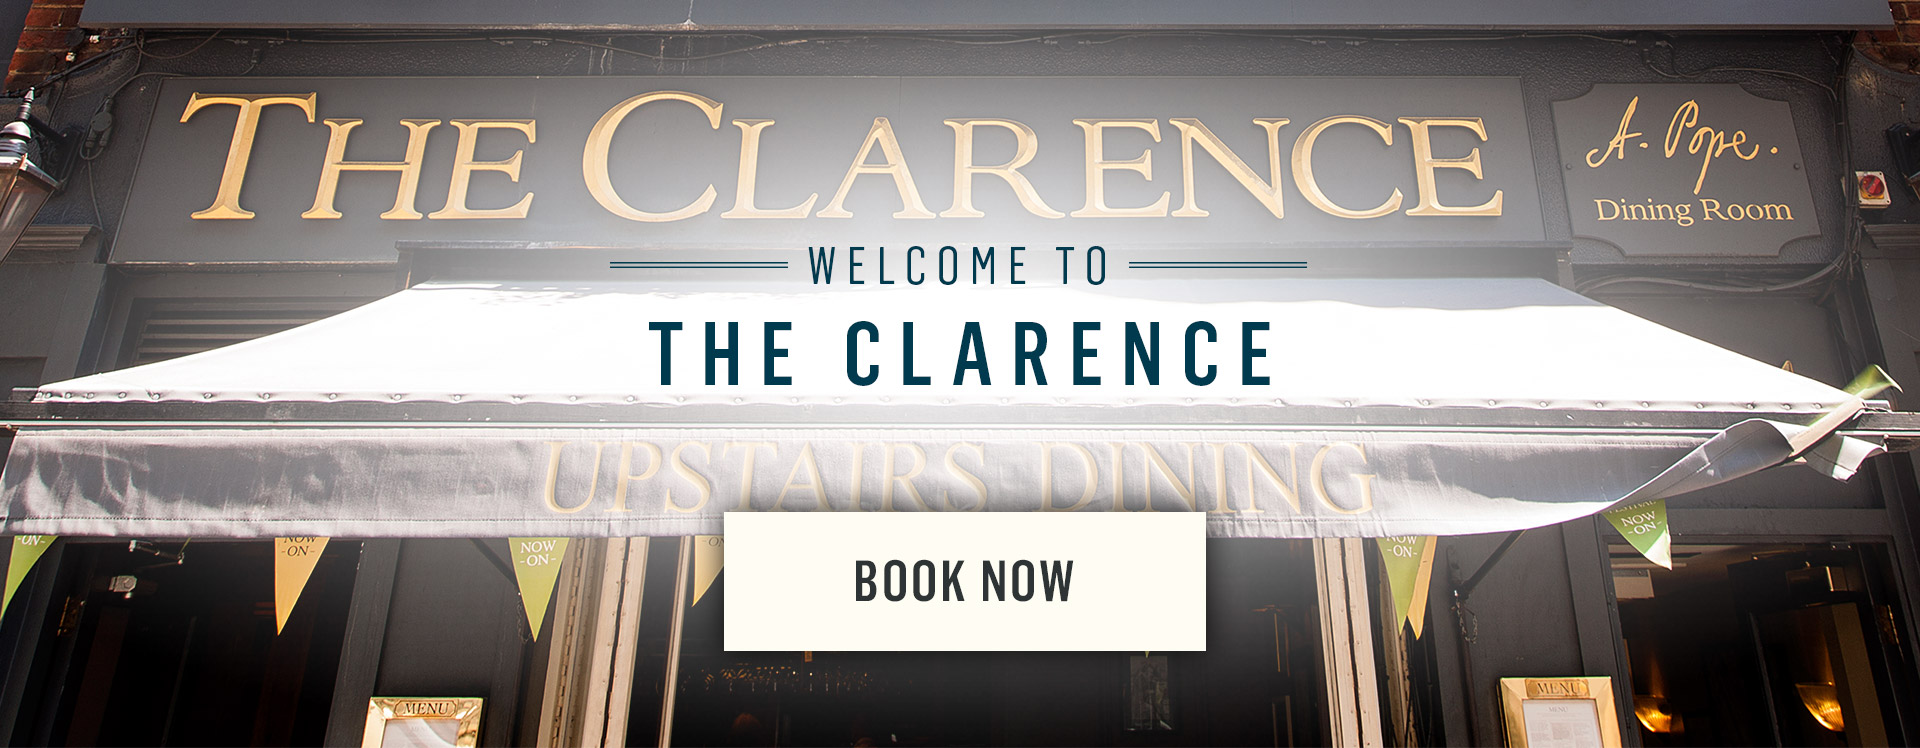 Welcome to The Clarence - Book Now